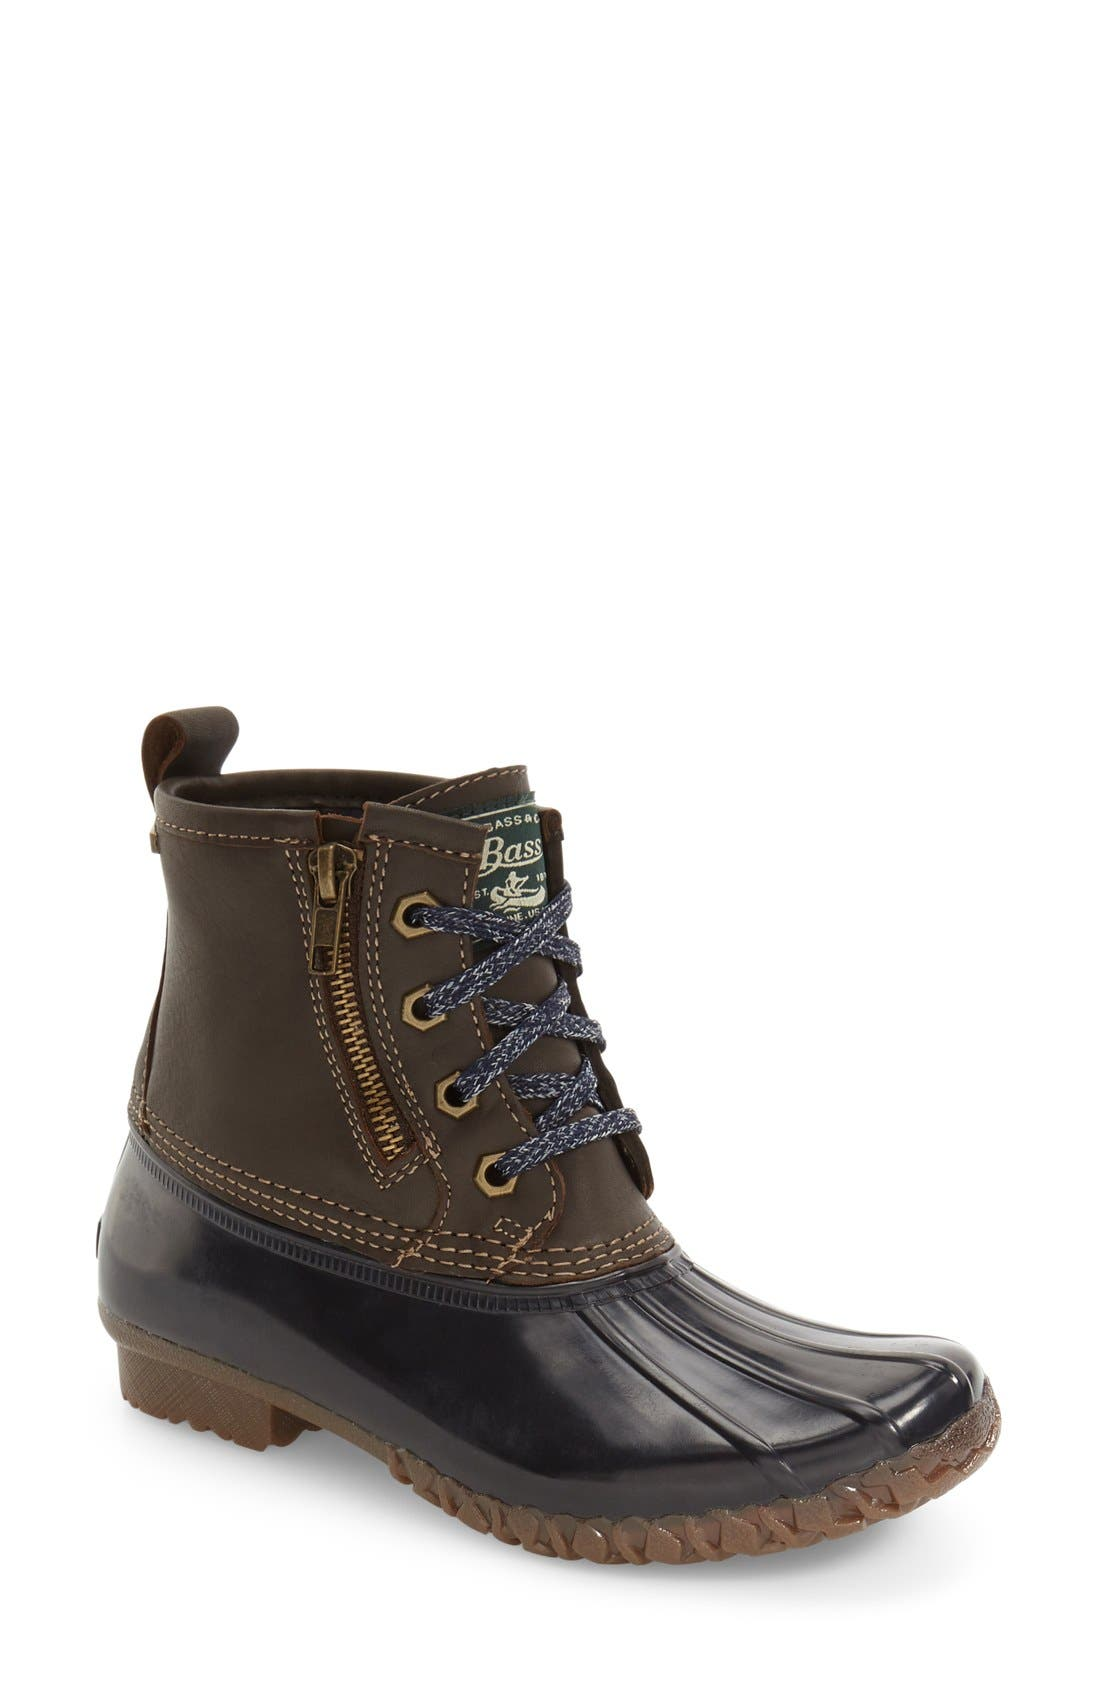 Danielle Waterproof Duck Boot,                         Main,                         color, Chocolate/ Navy Leather